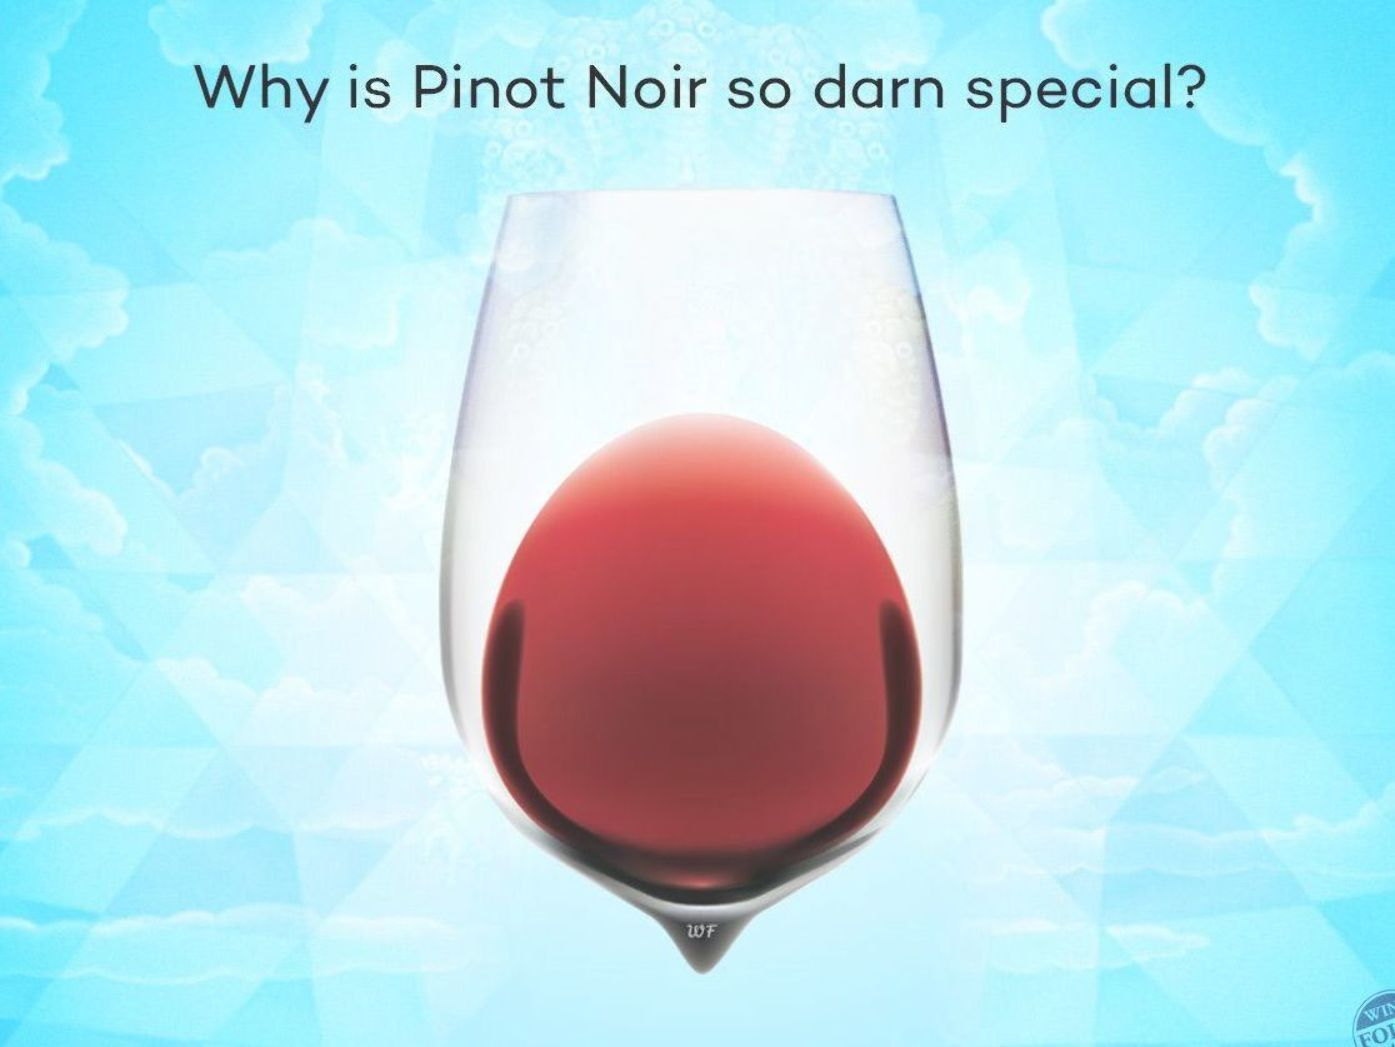 Why Is Pinot Noir So Darn Special Pinot Noir Is The 10th Most Planted Grape Variety In The World Let S Take A Look At 5 Facts On P Wine Folly Pinot